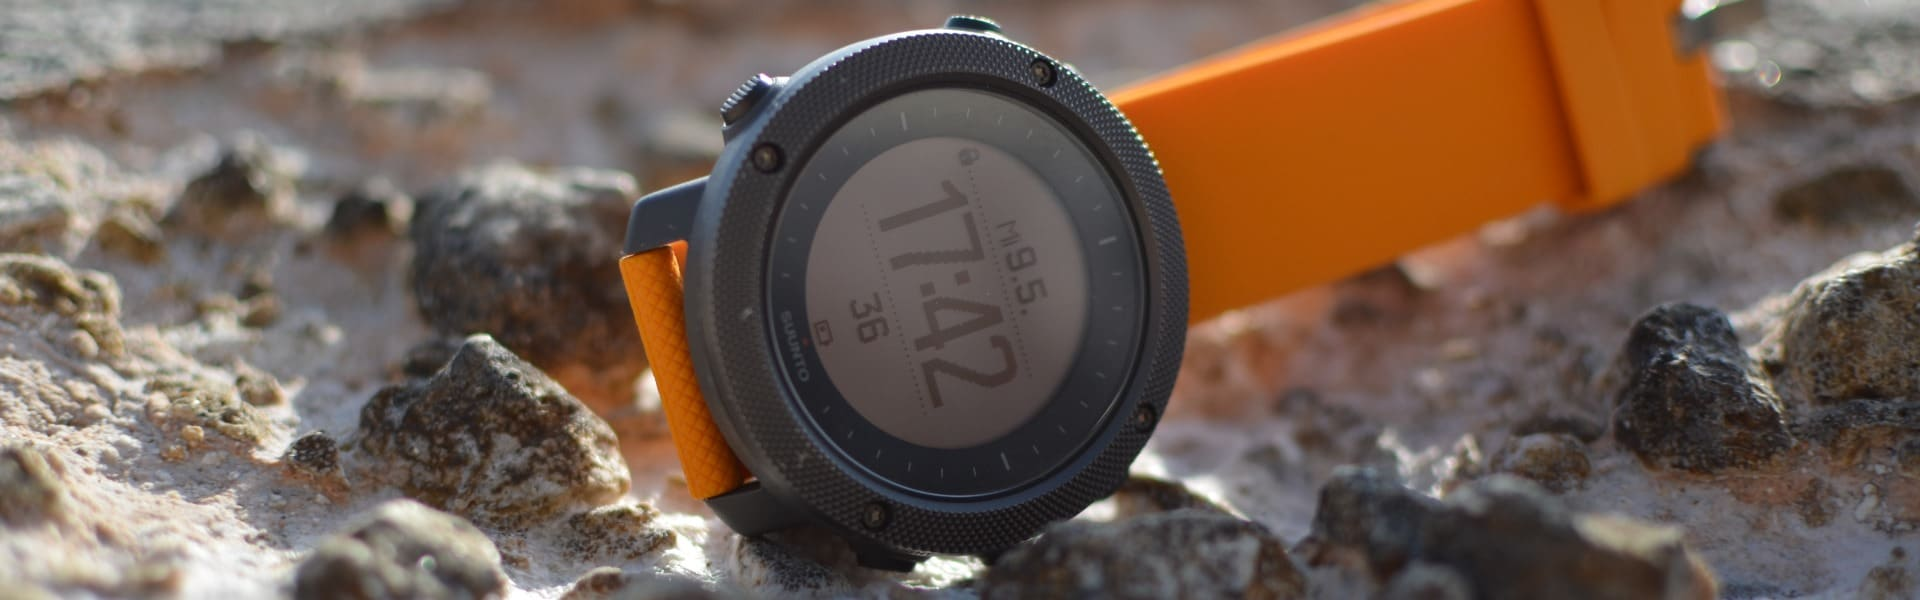 Best Altimeter Watches Reviewed in Detail